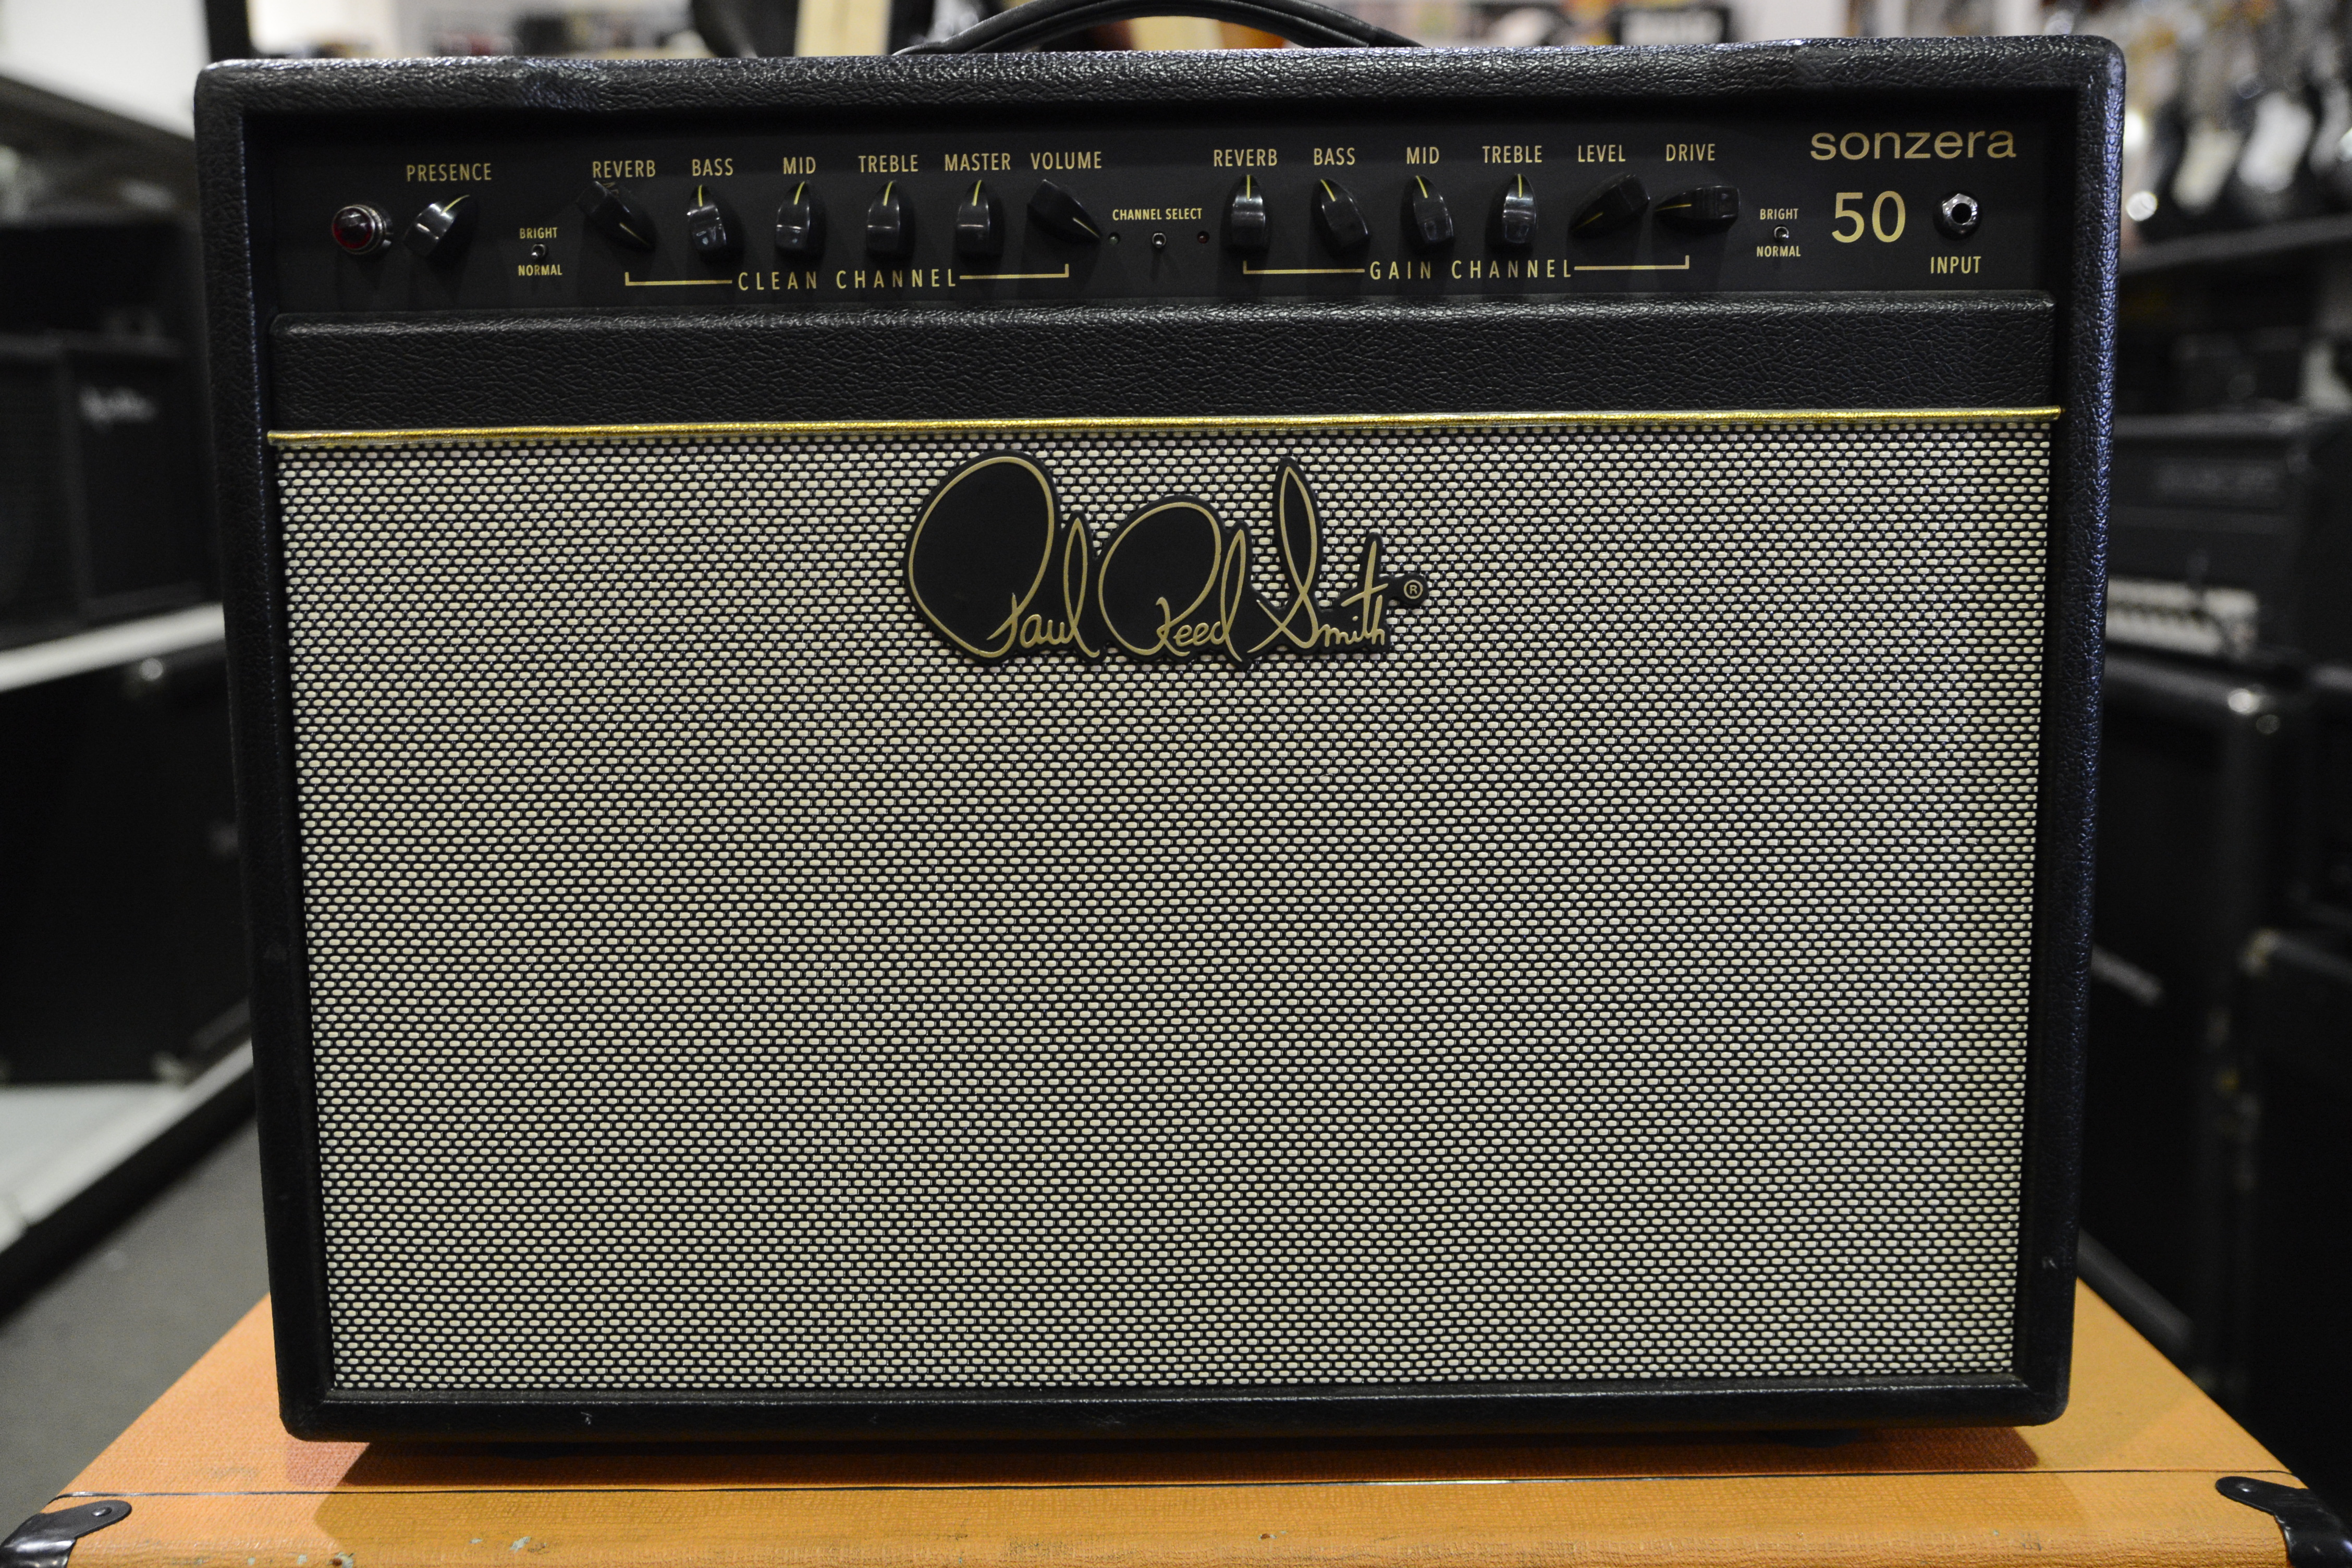 PAUL REED SMITH PRS SONZERA 50 1x12 GUITAR COMBO TUBE AMPLIFIER